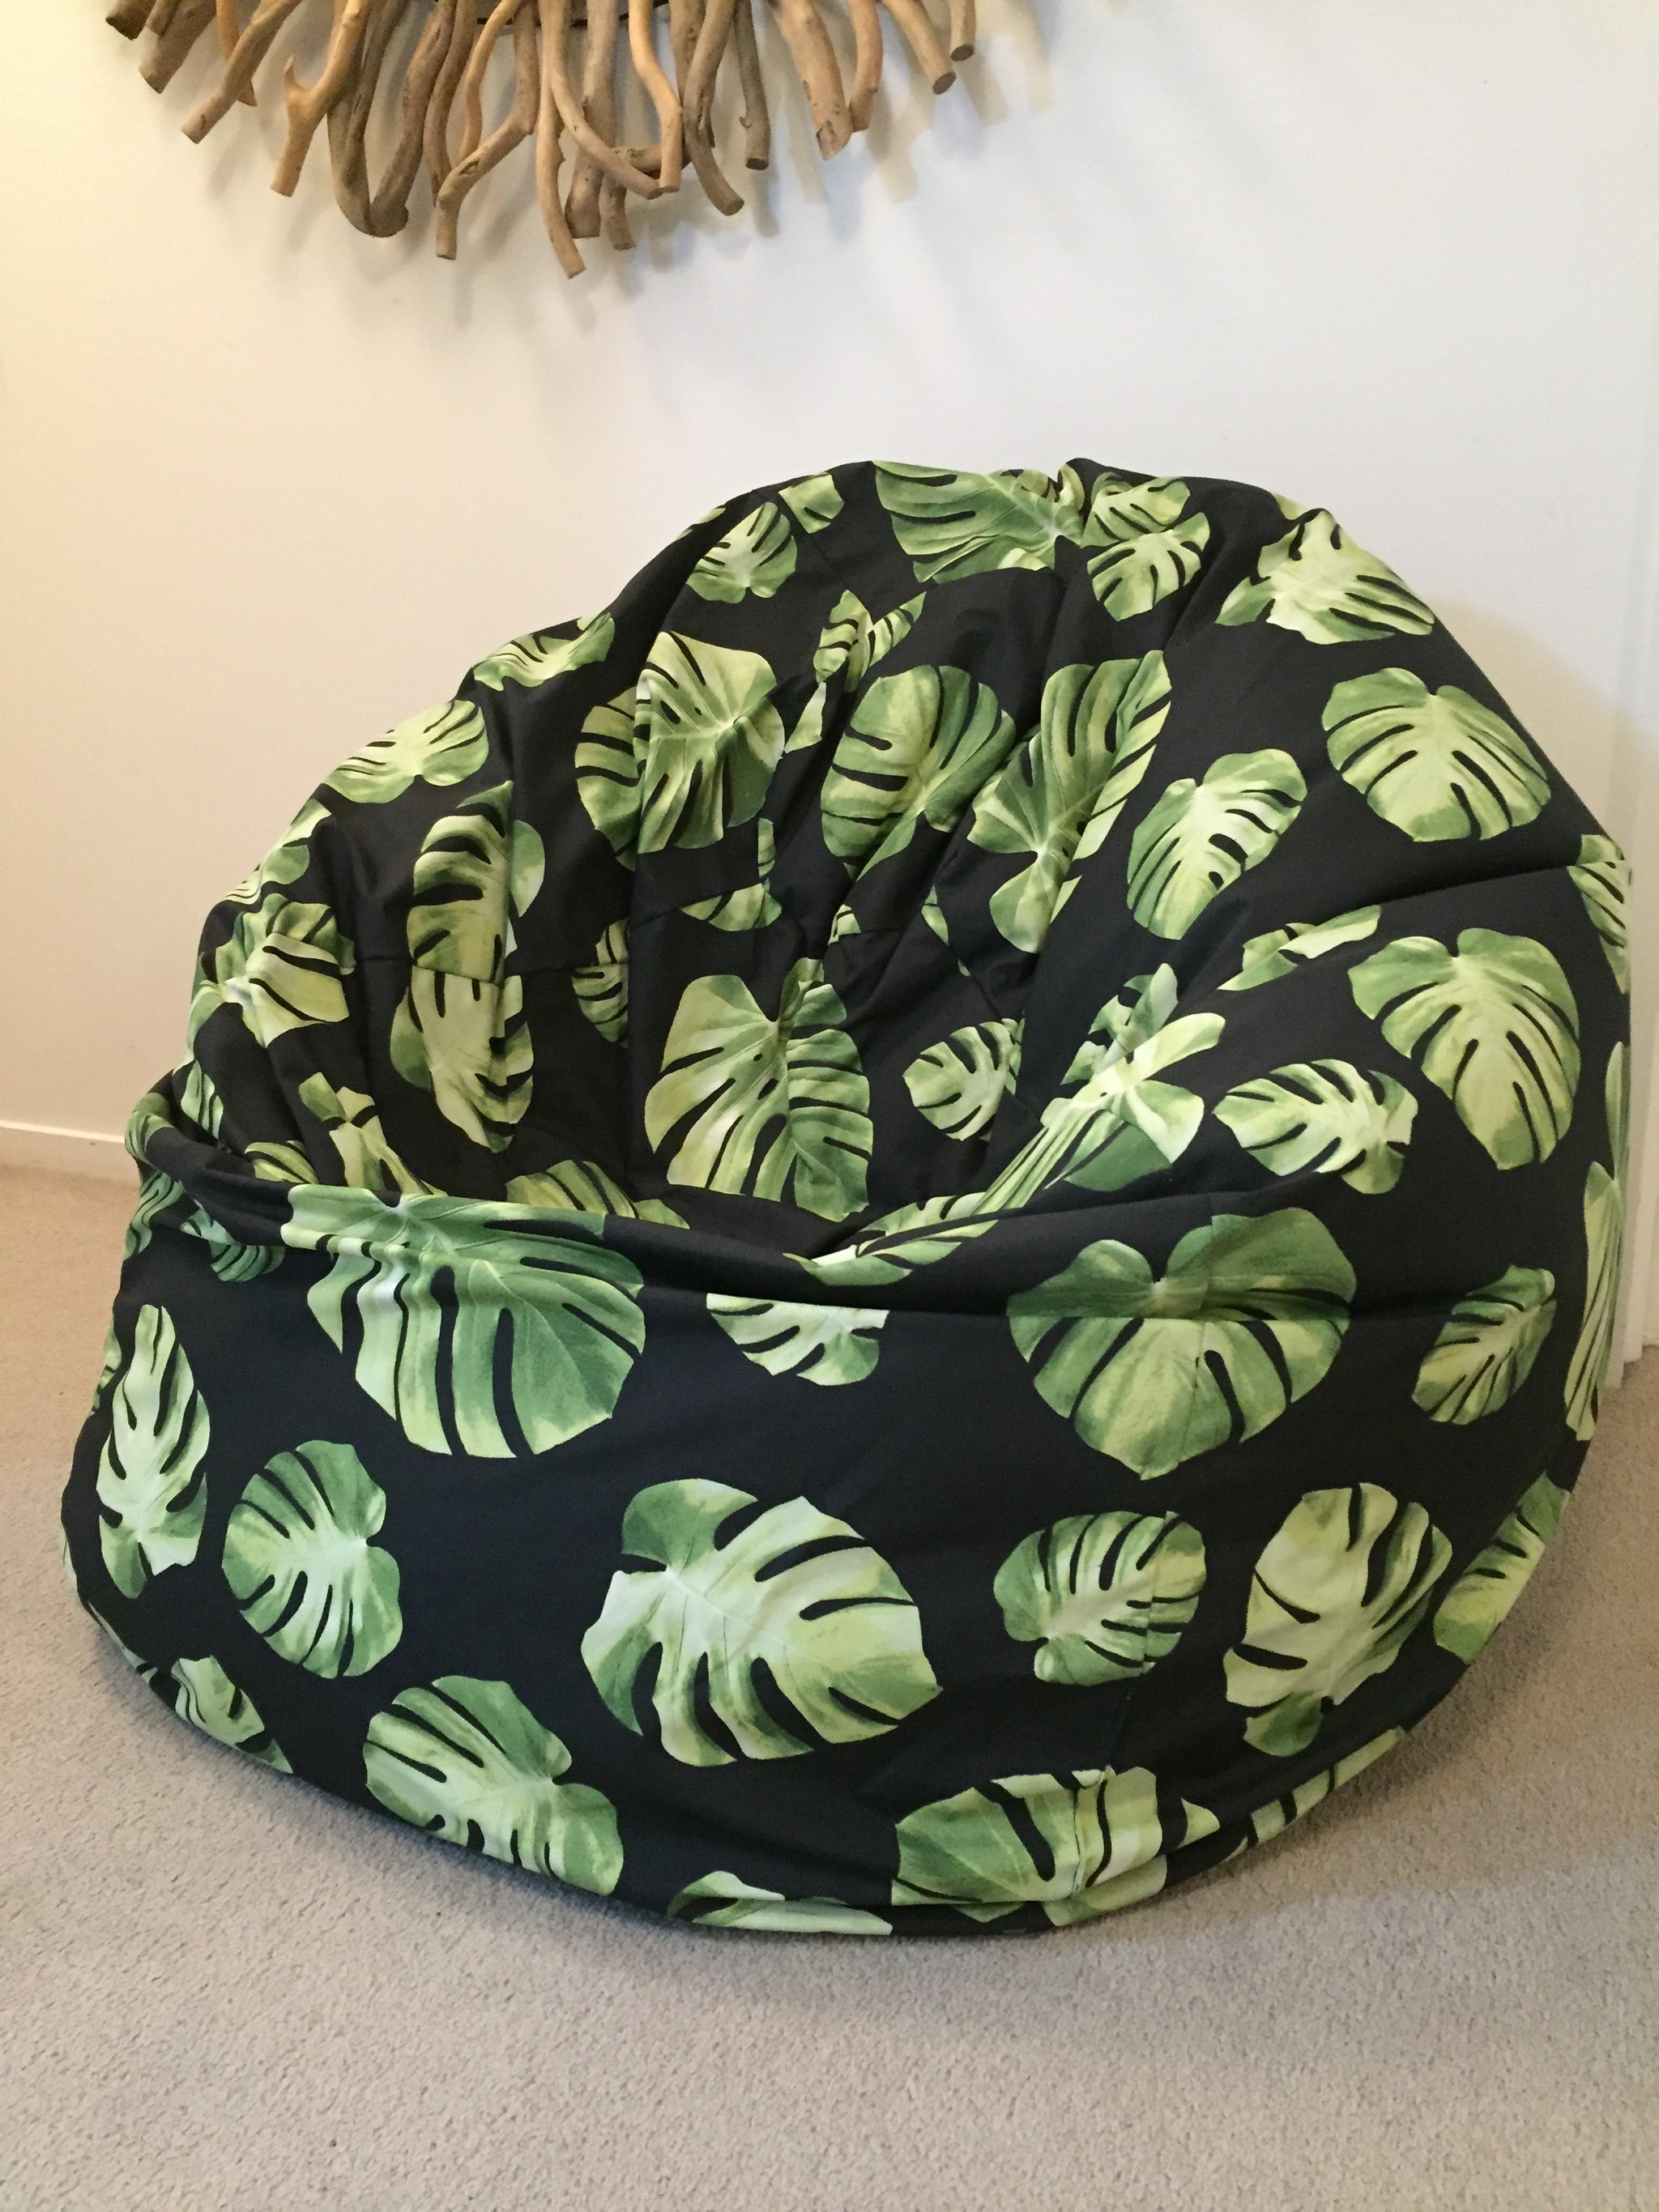 Surprising Braziwi Bean Bags Gmtry Best Dining Table And Chair Ideas Images Gmtryco